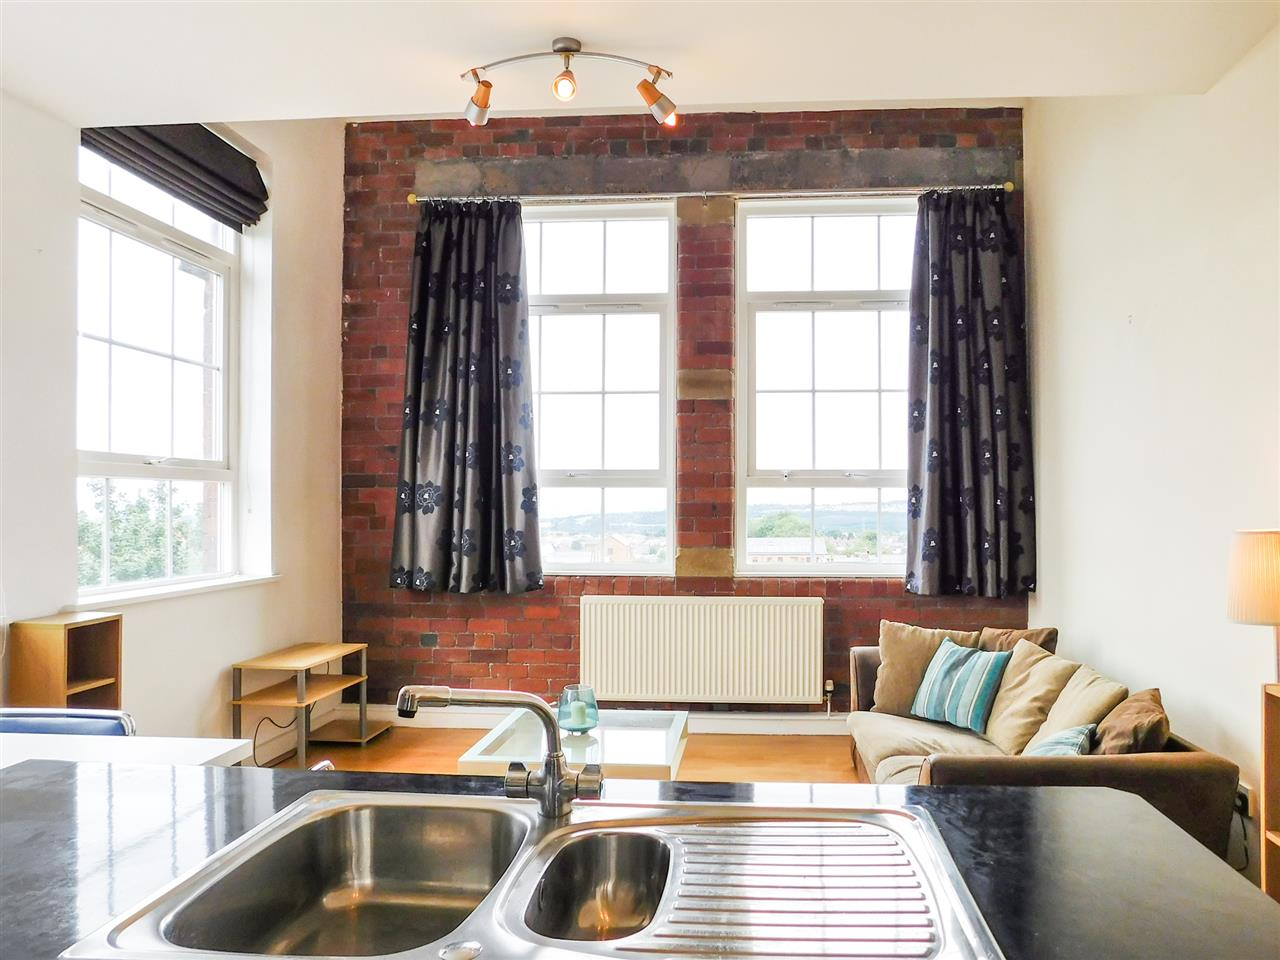 2 Bedroom Apartment For Sale Peel Mills Town End Ls27